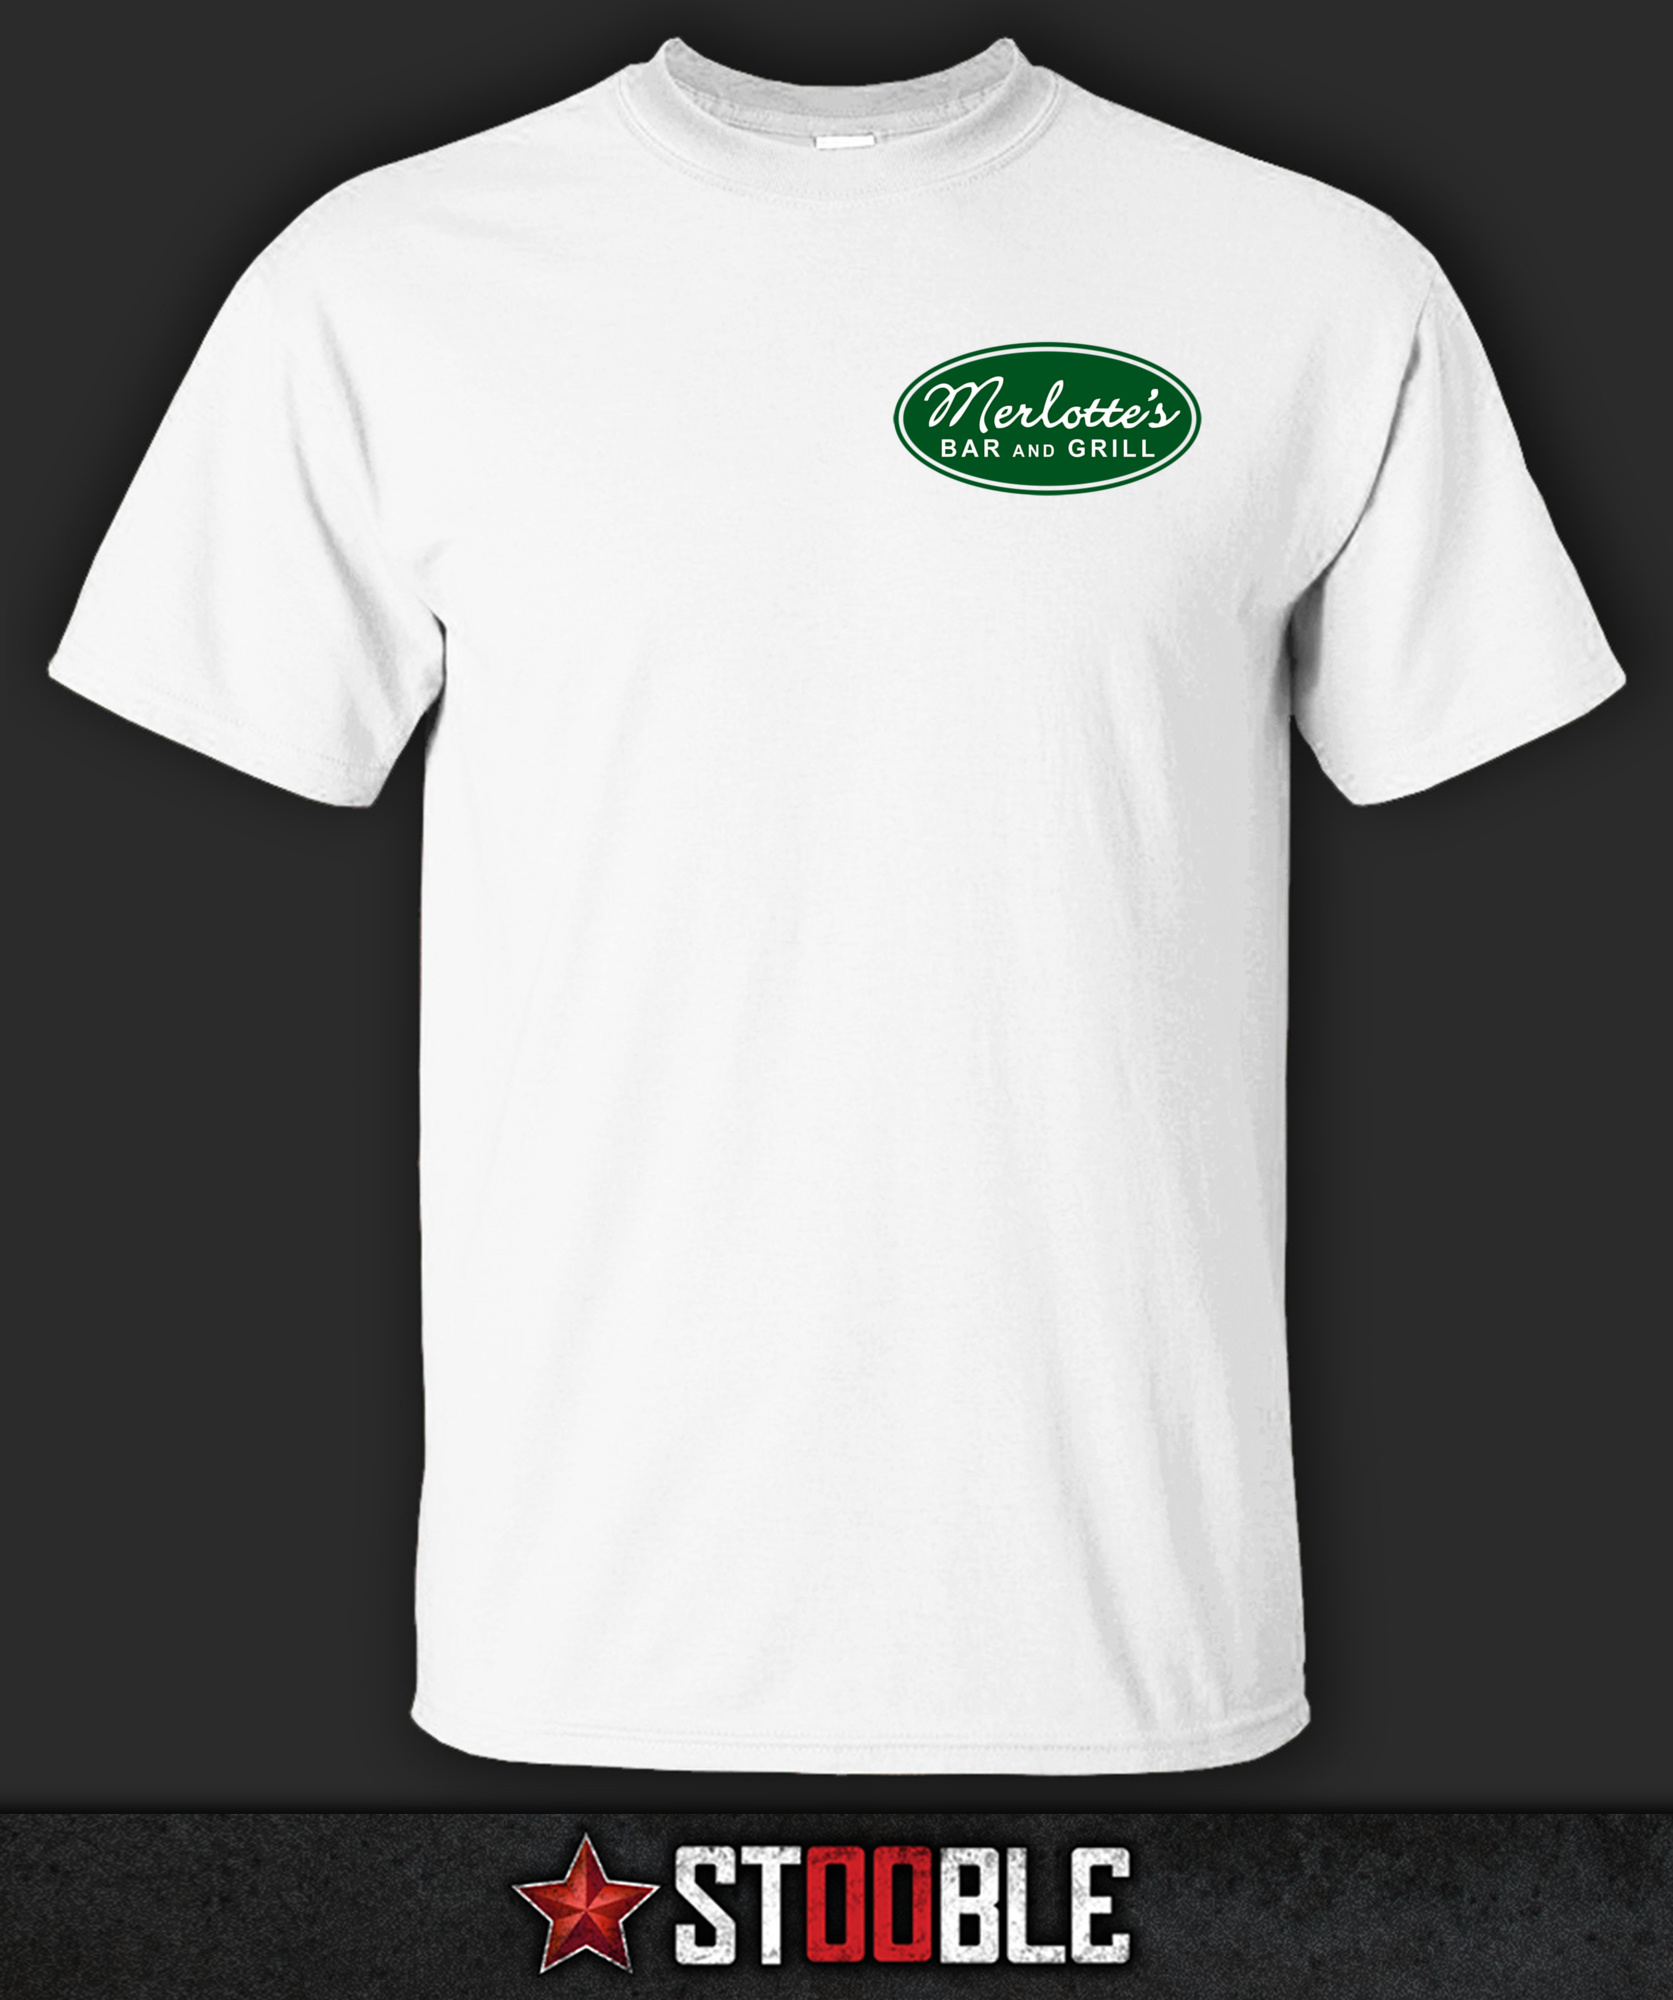 Merlotte 39 s bar and grill t shirt new direct from for Restaurant t shirt ideas